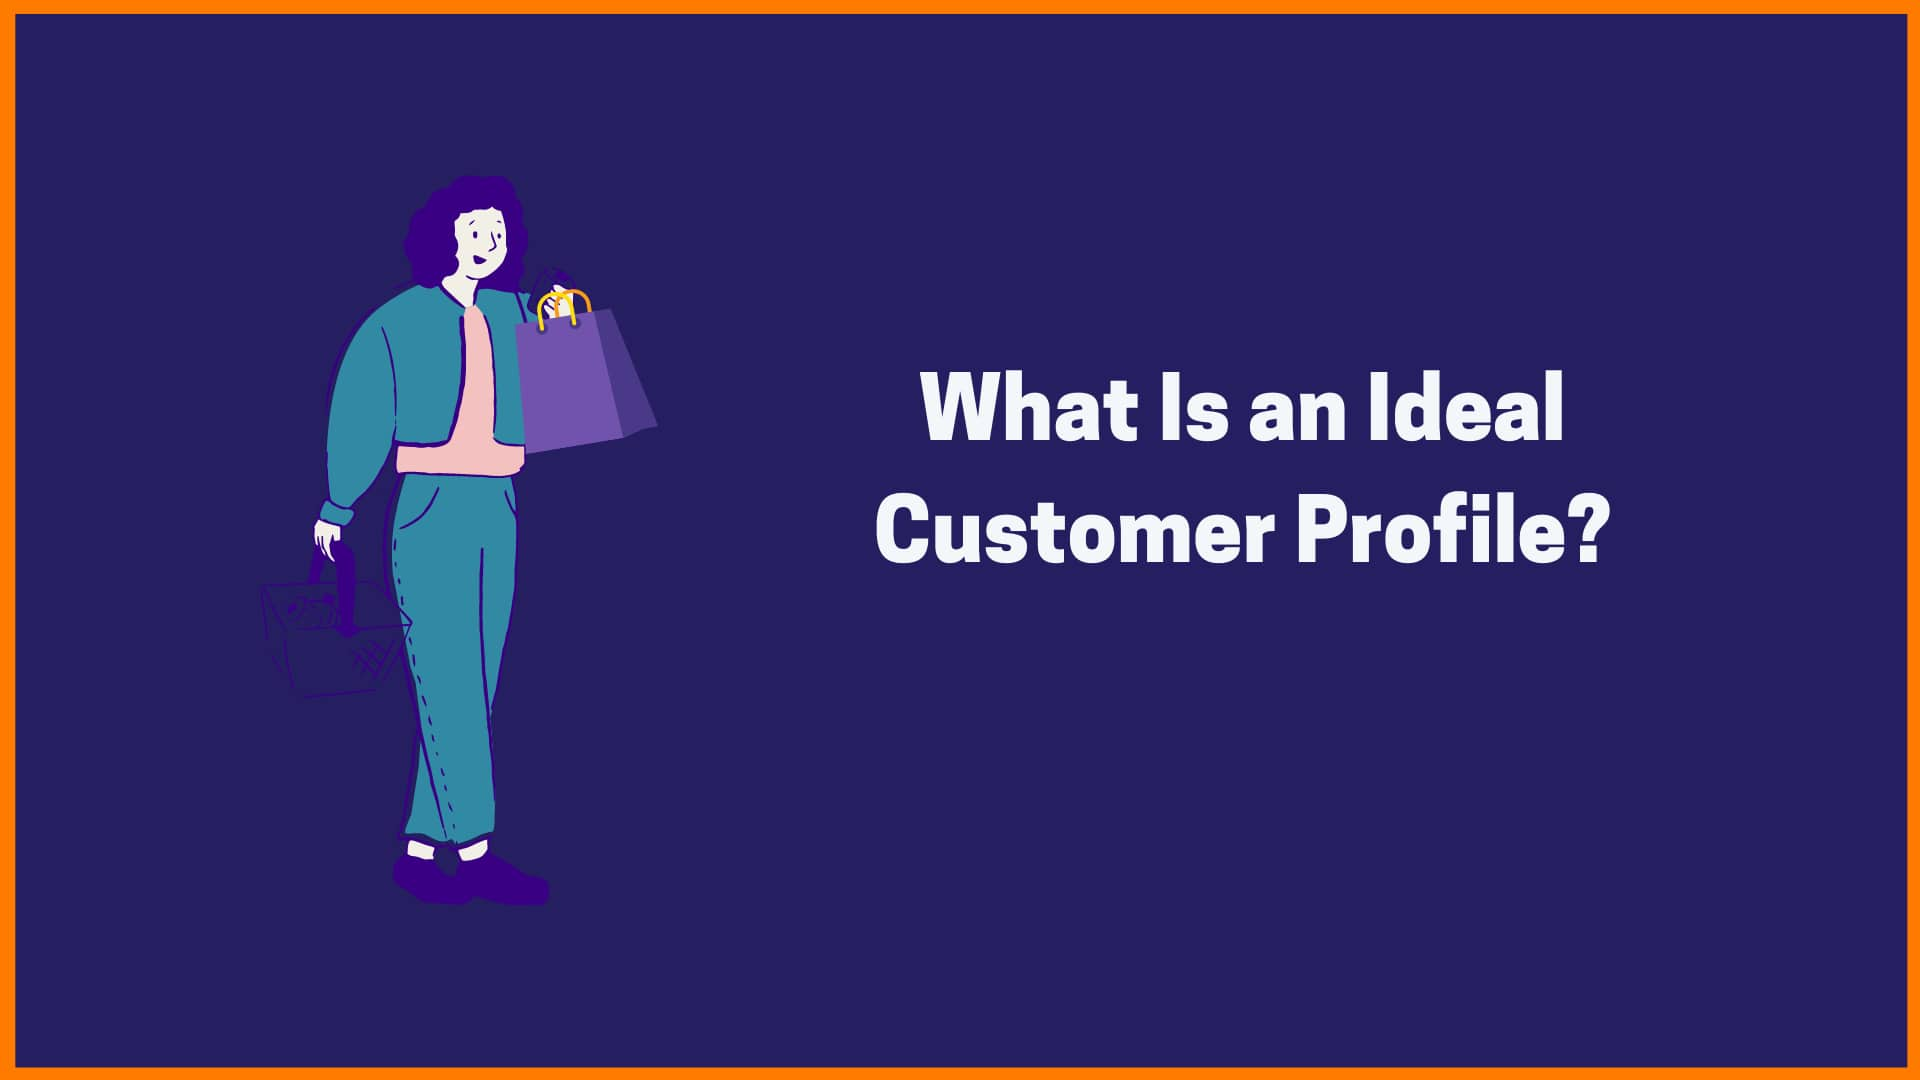 What Is an Ideal Customer Profile?